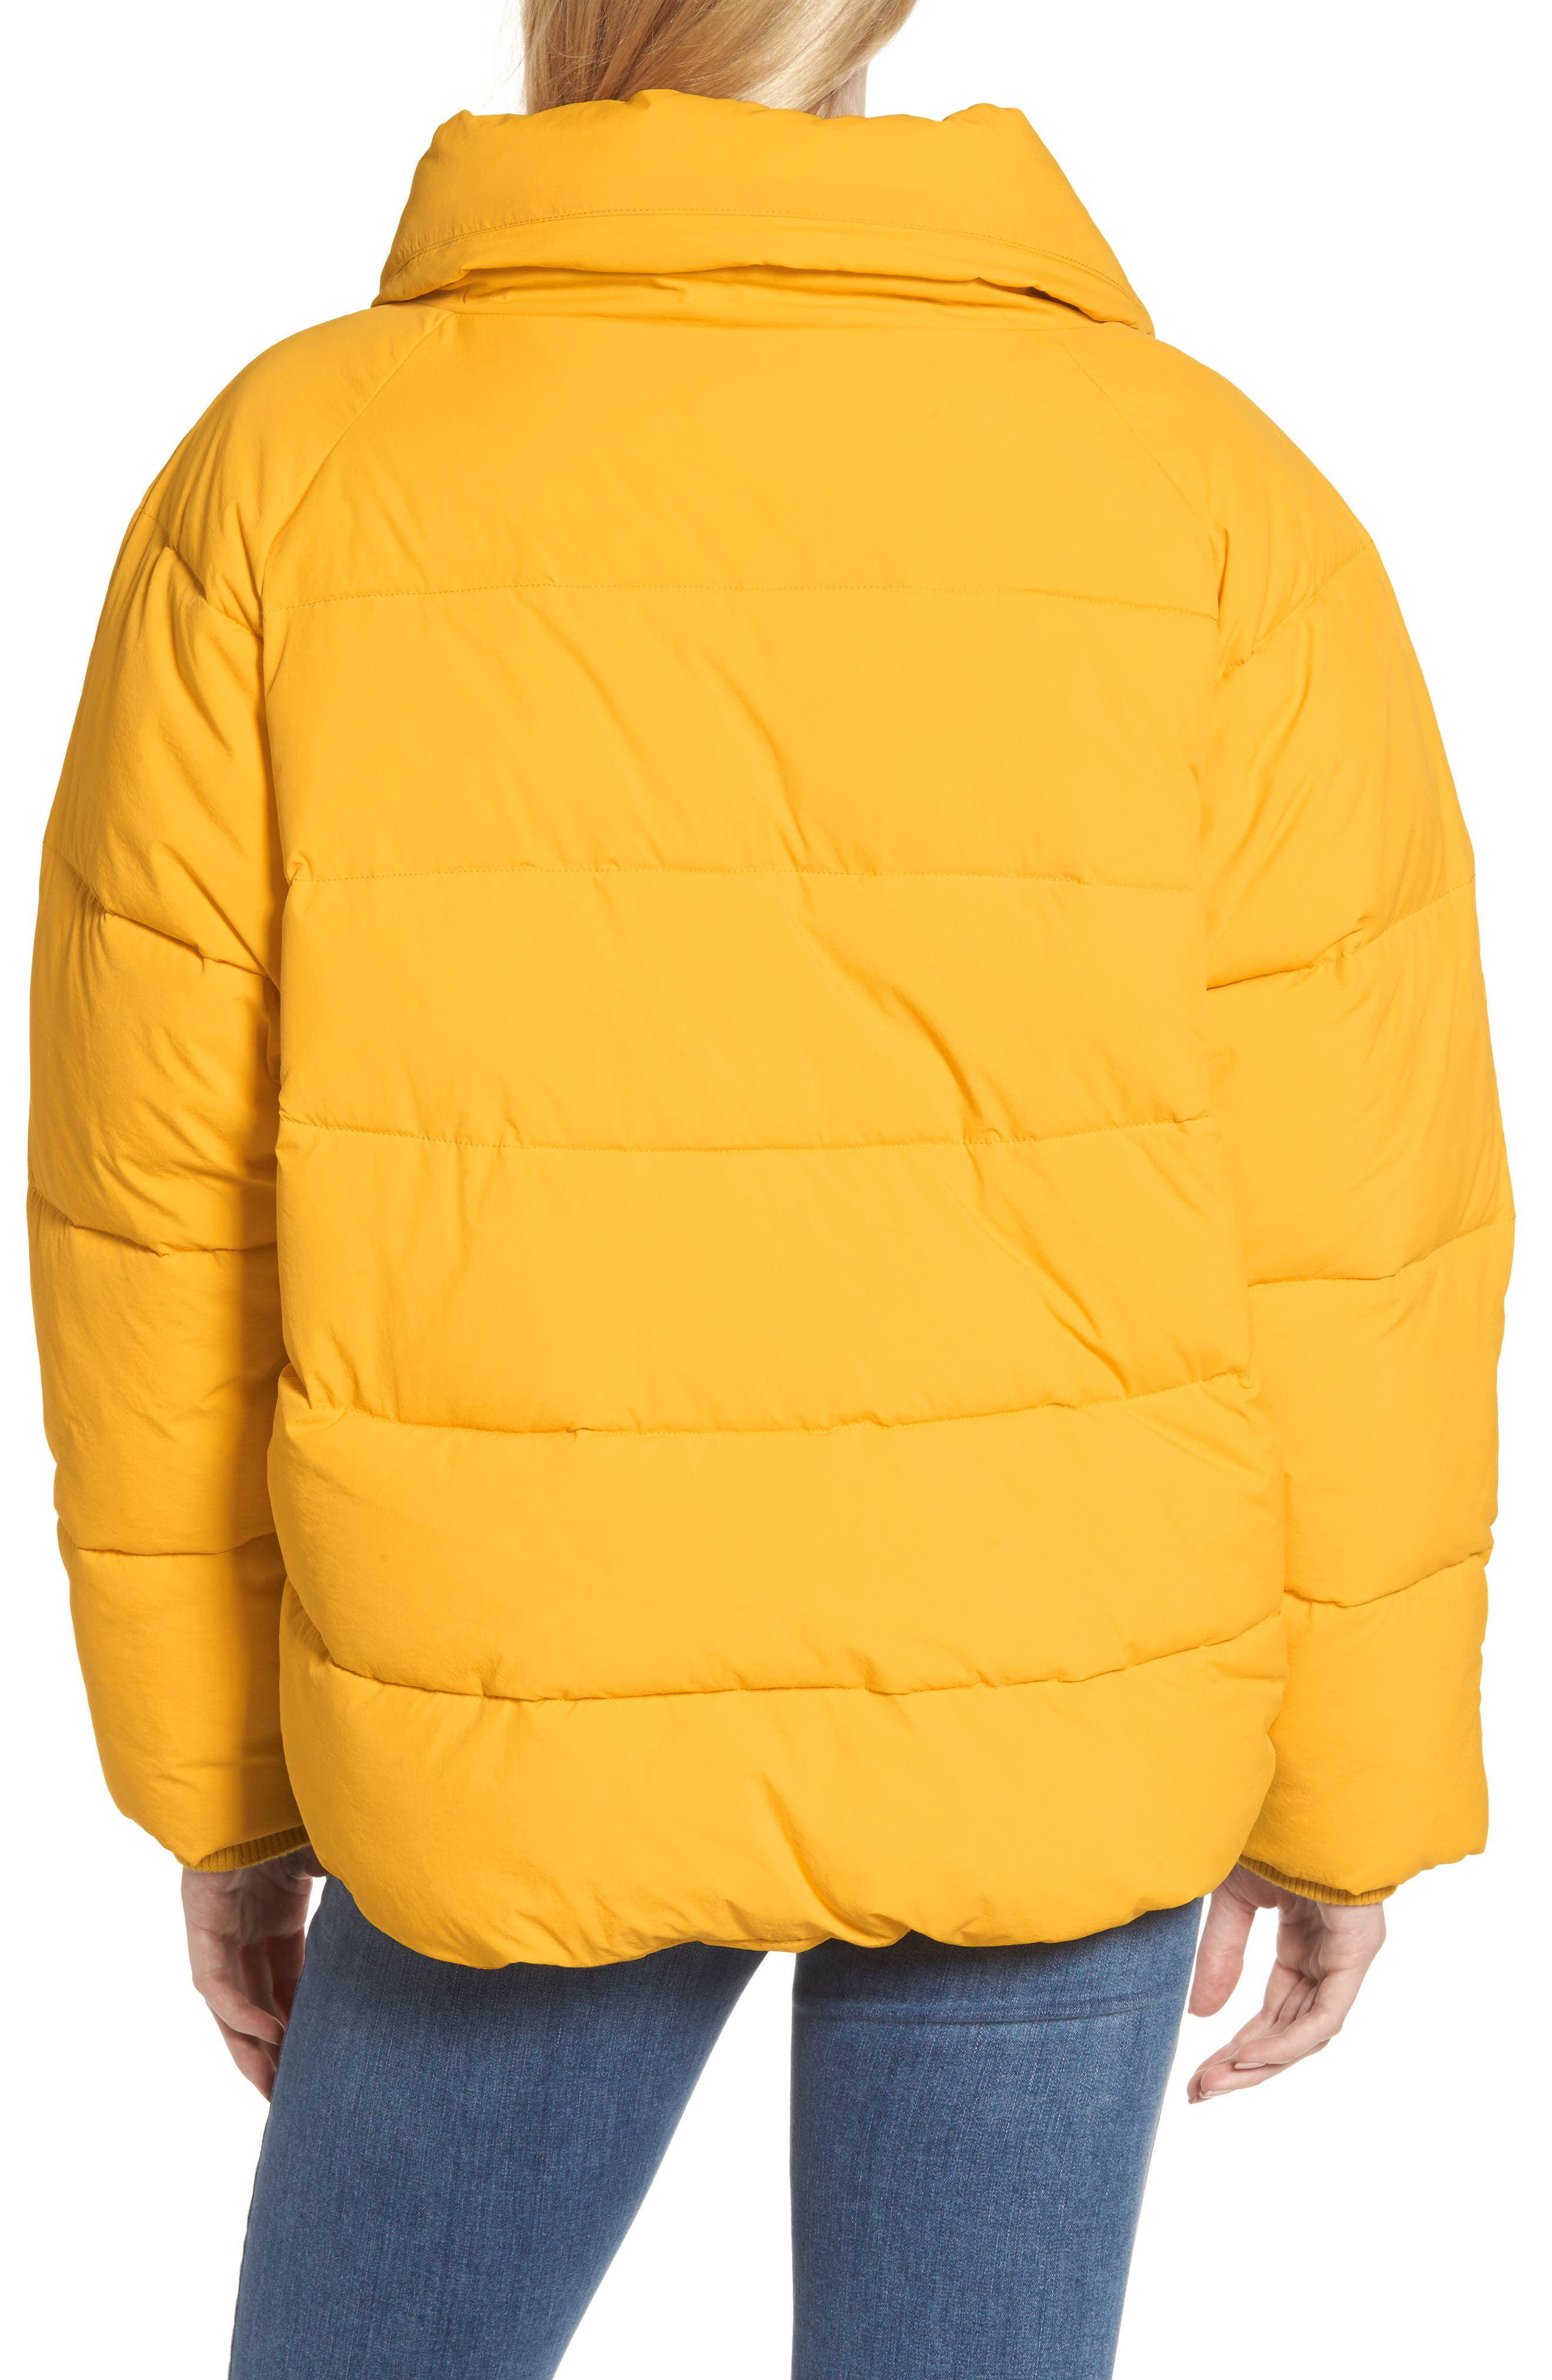 Puffer Coat,                             Alternate thumbnail 2, color,                             700